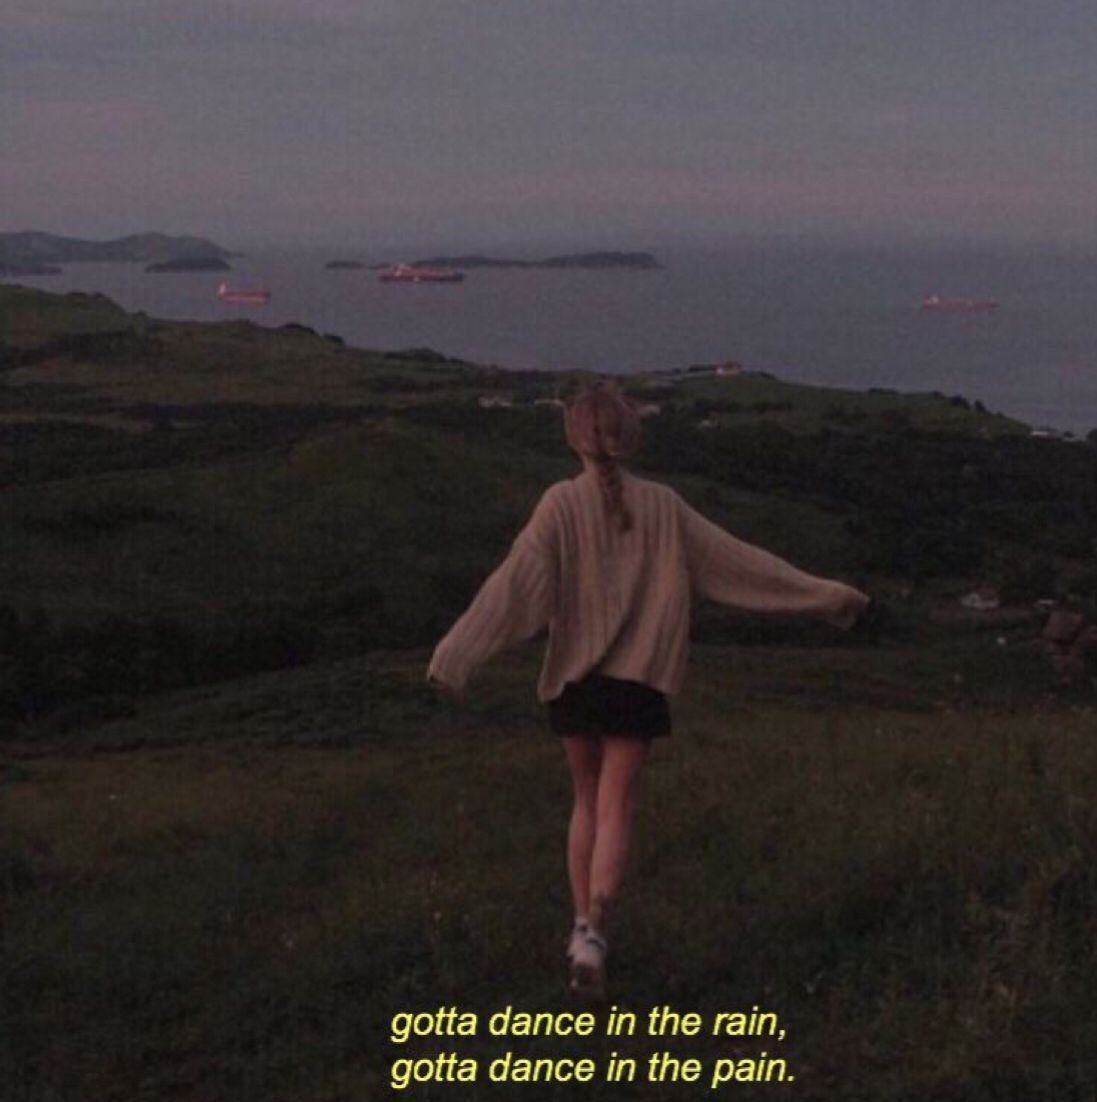 Lyrics Quotes And Wallpaper Image Aesthetic Tumblr Girl Dance 1097x1102 Wallpaper Teahub Io